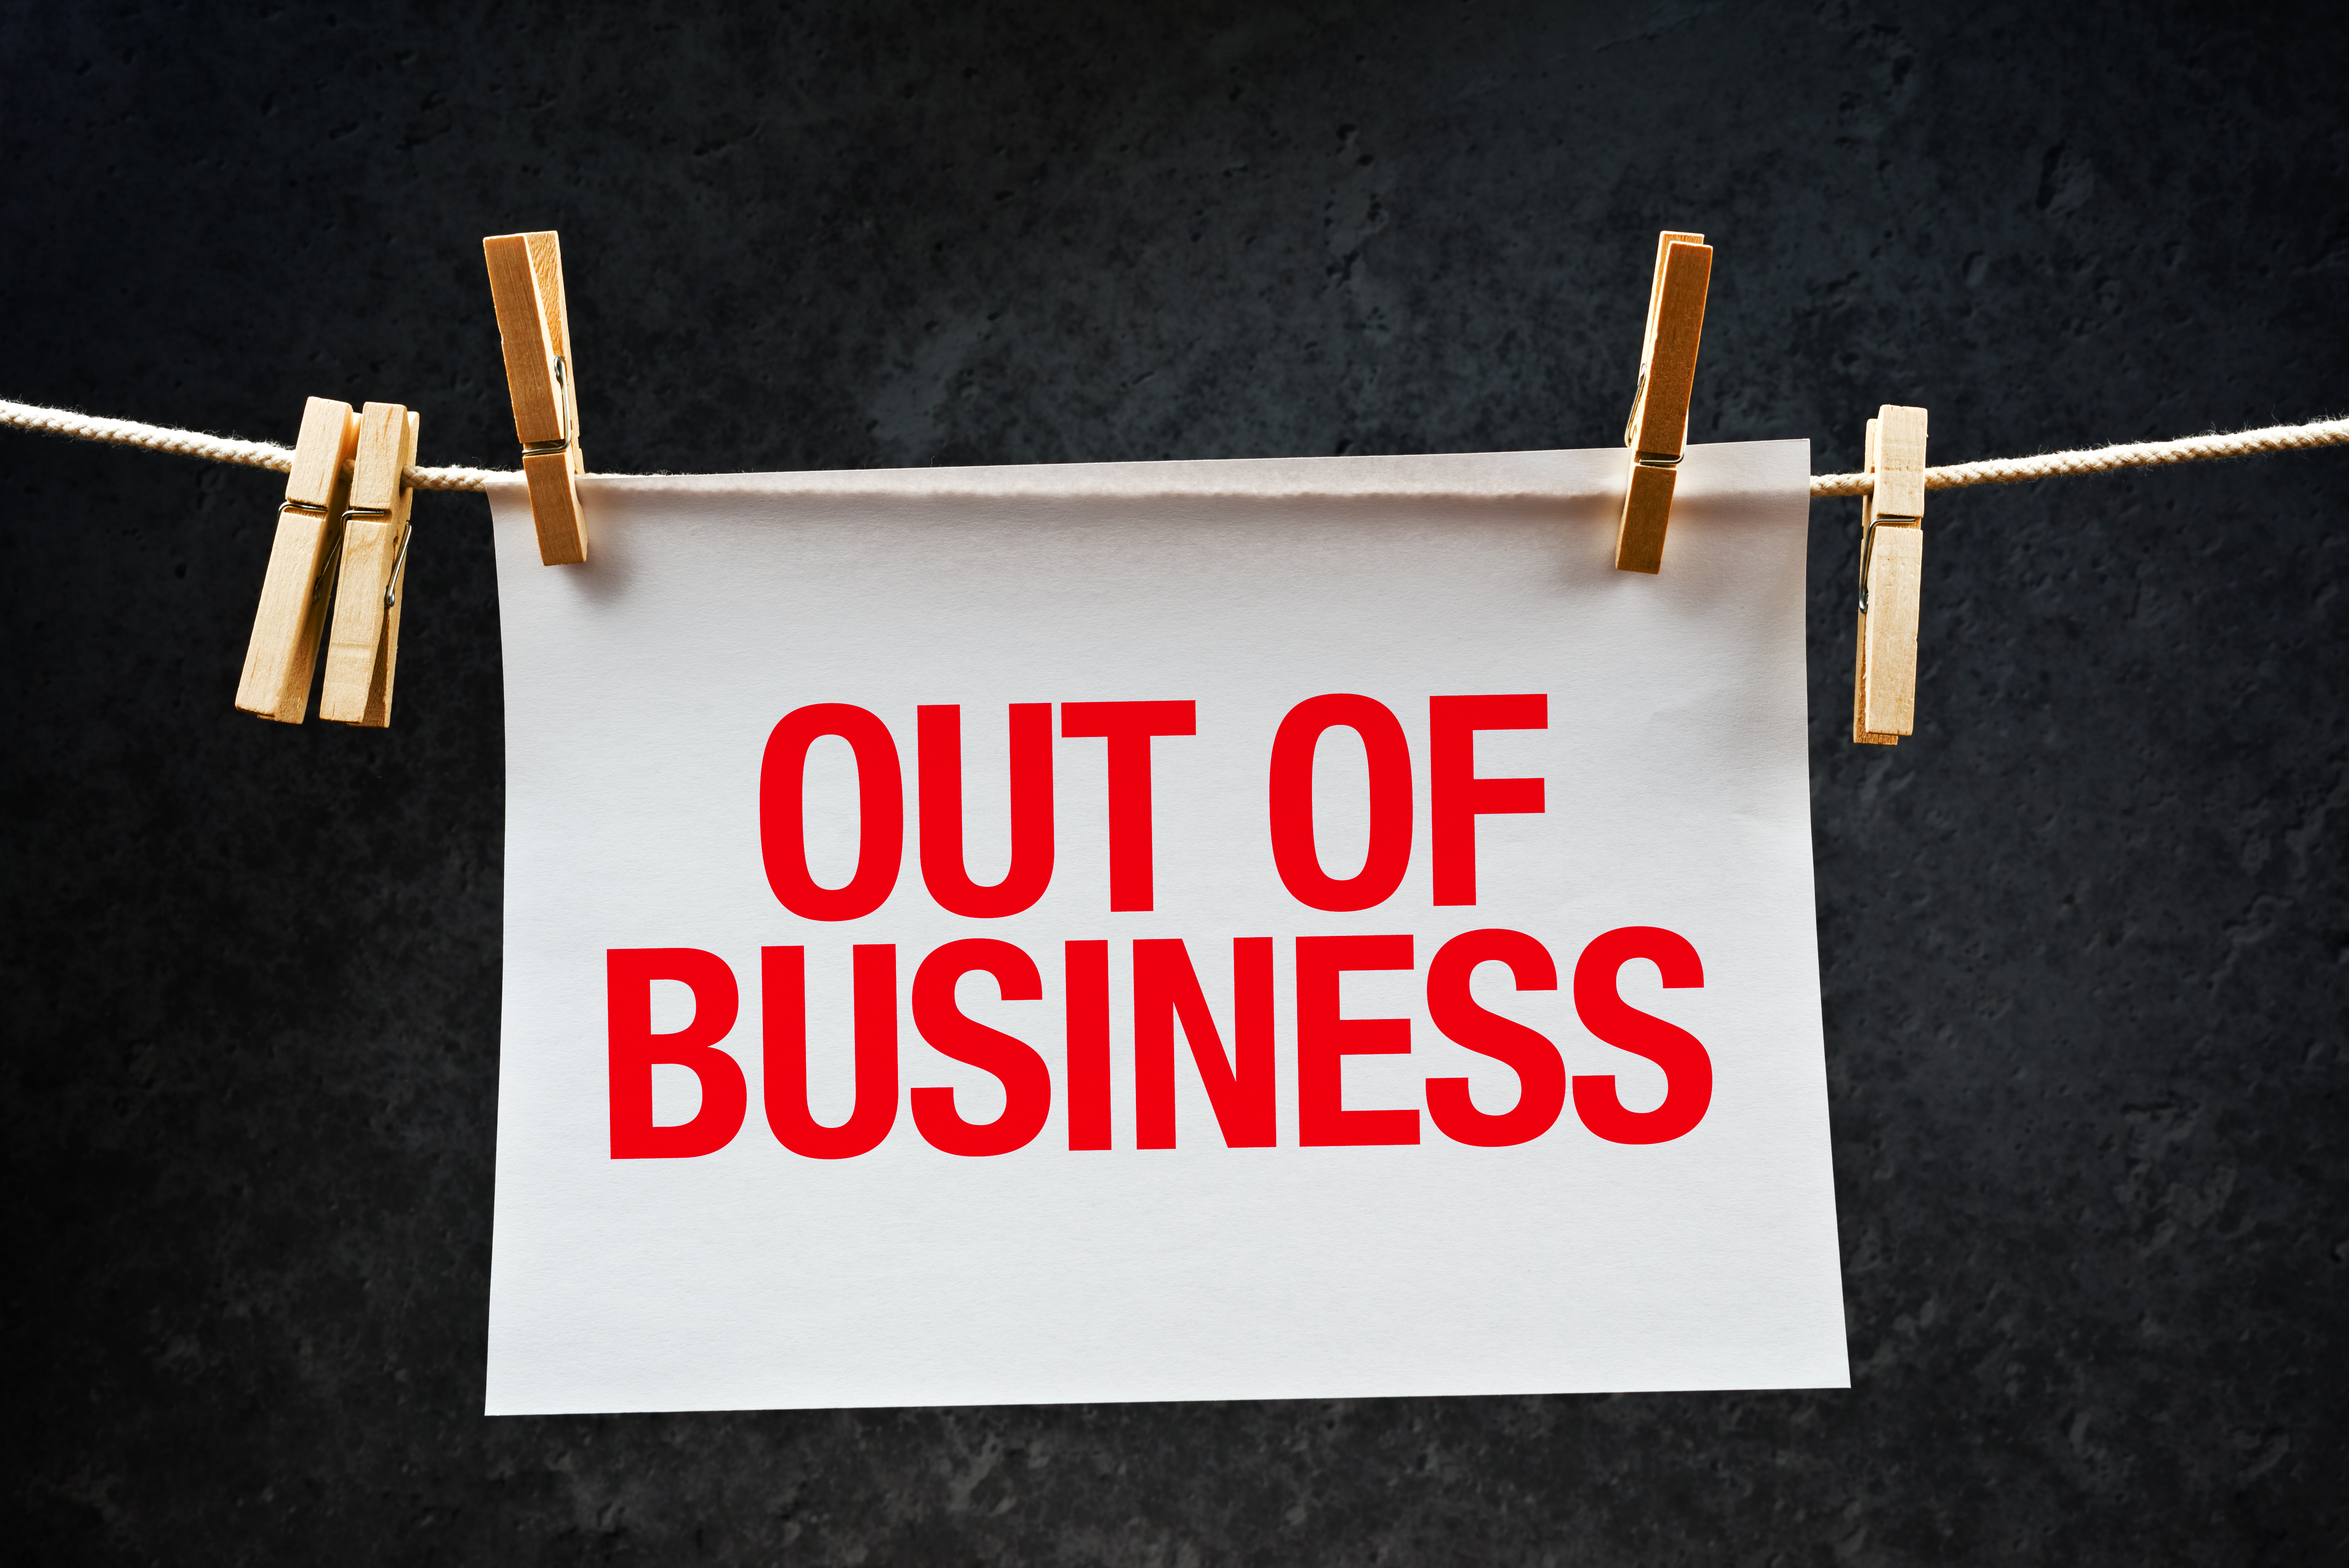 5 Financial Mistakes That Can Kill Your Business